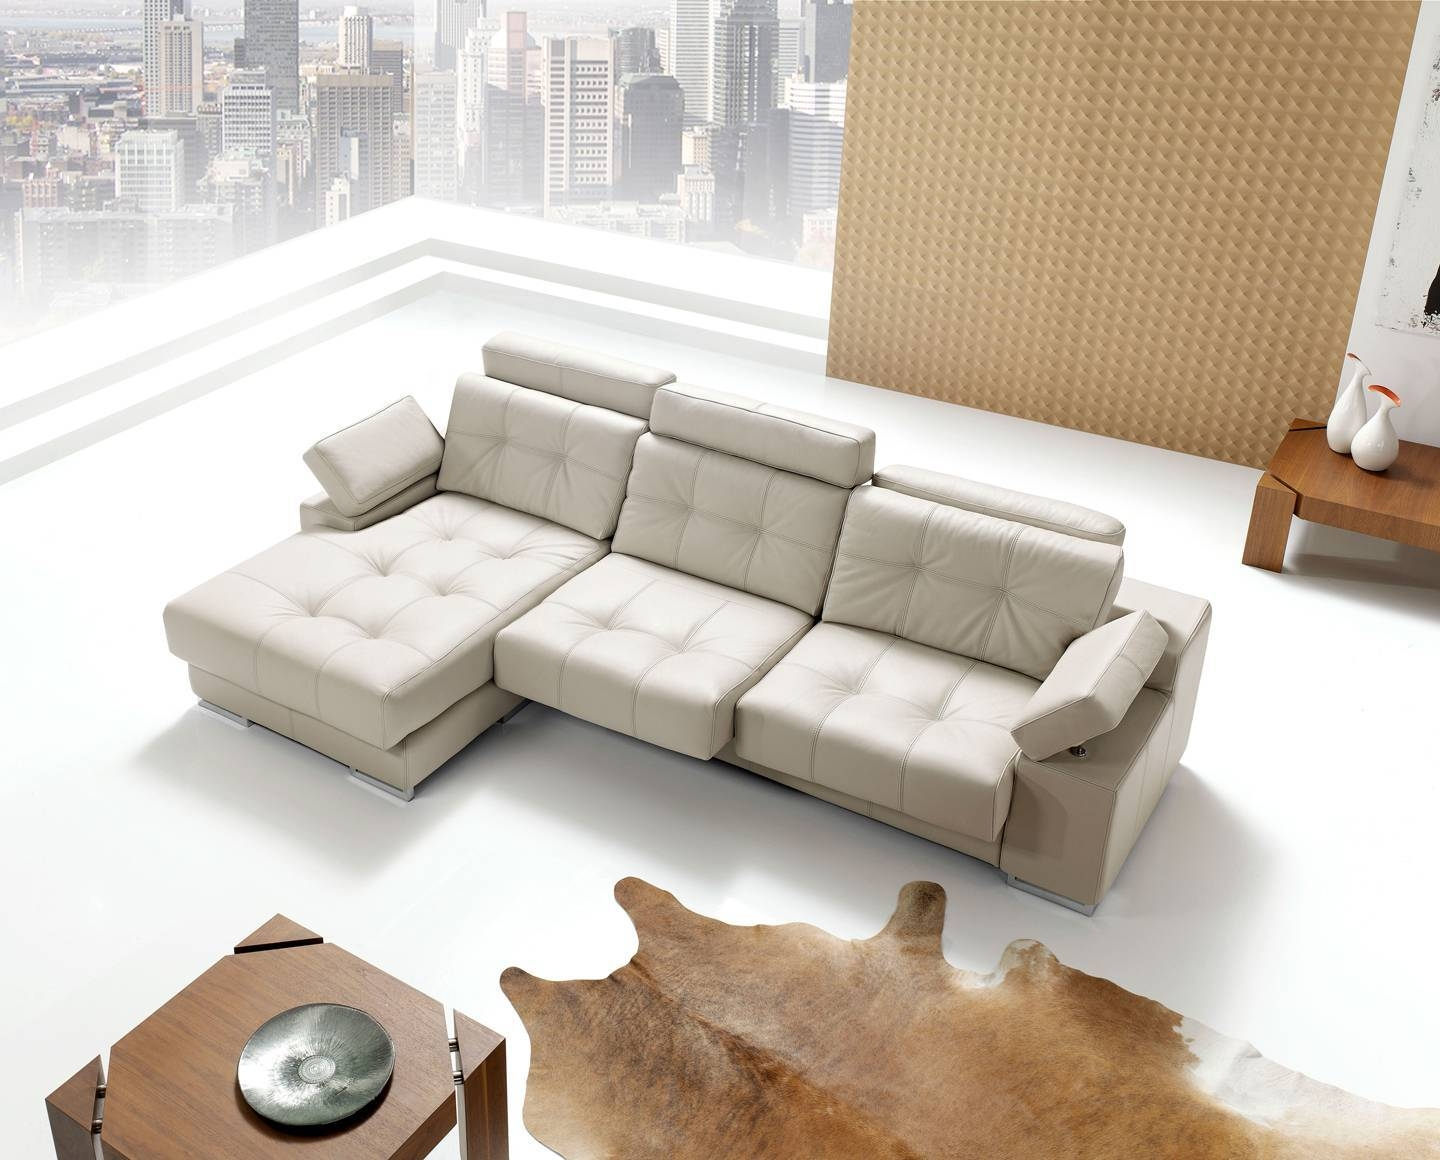 100% Genuine Italian Quality Leather Sectionals. Corner Couches inside European Sectional Sofas (Image 1 of 30)